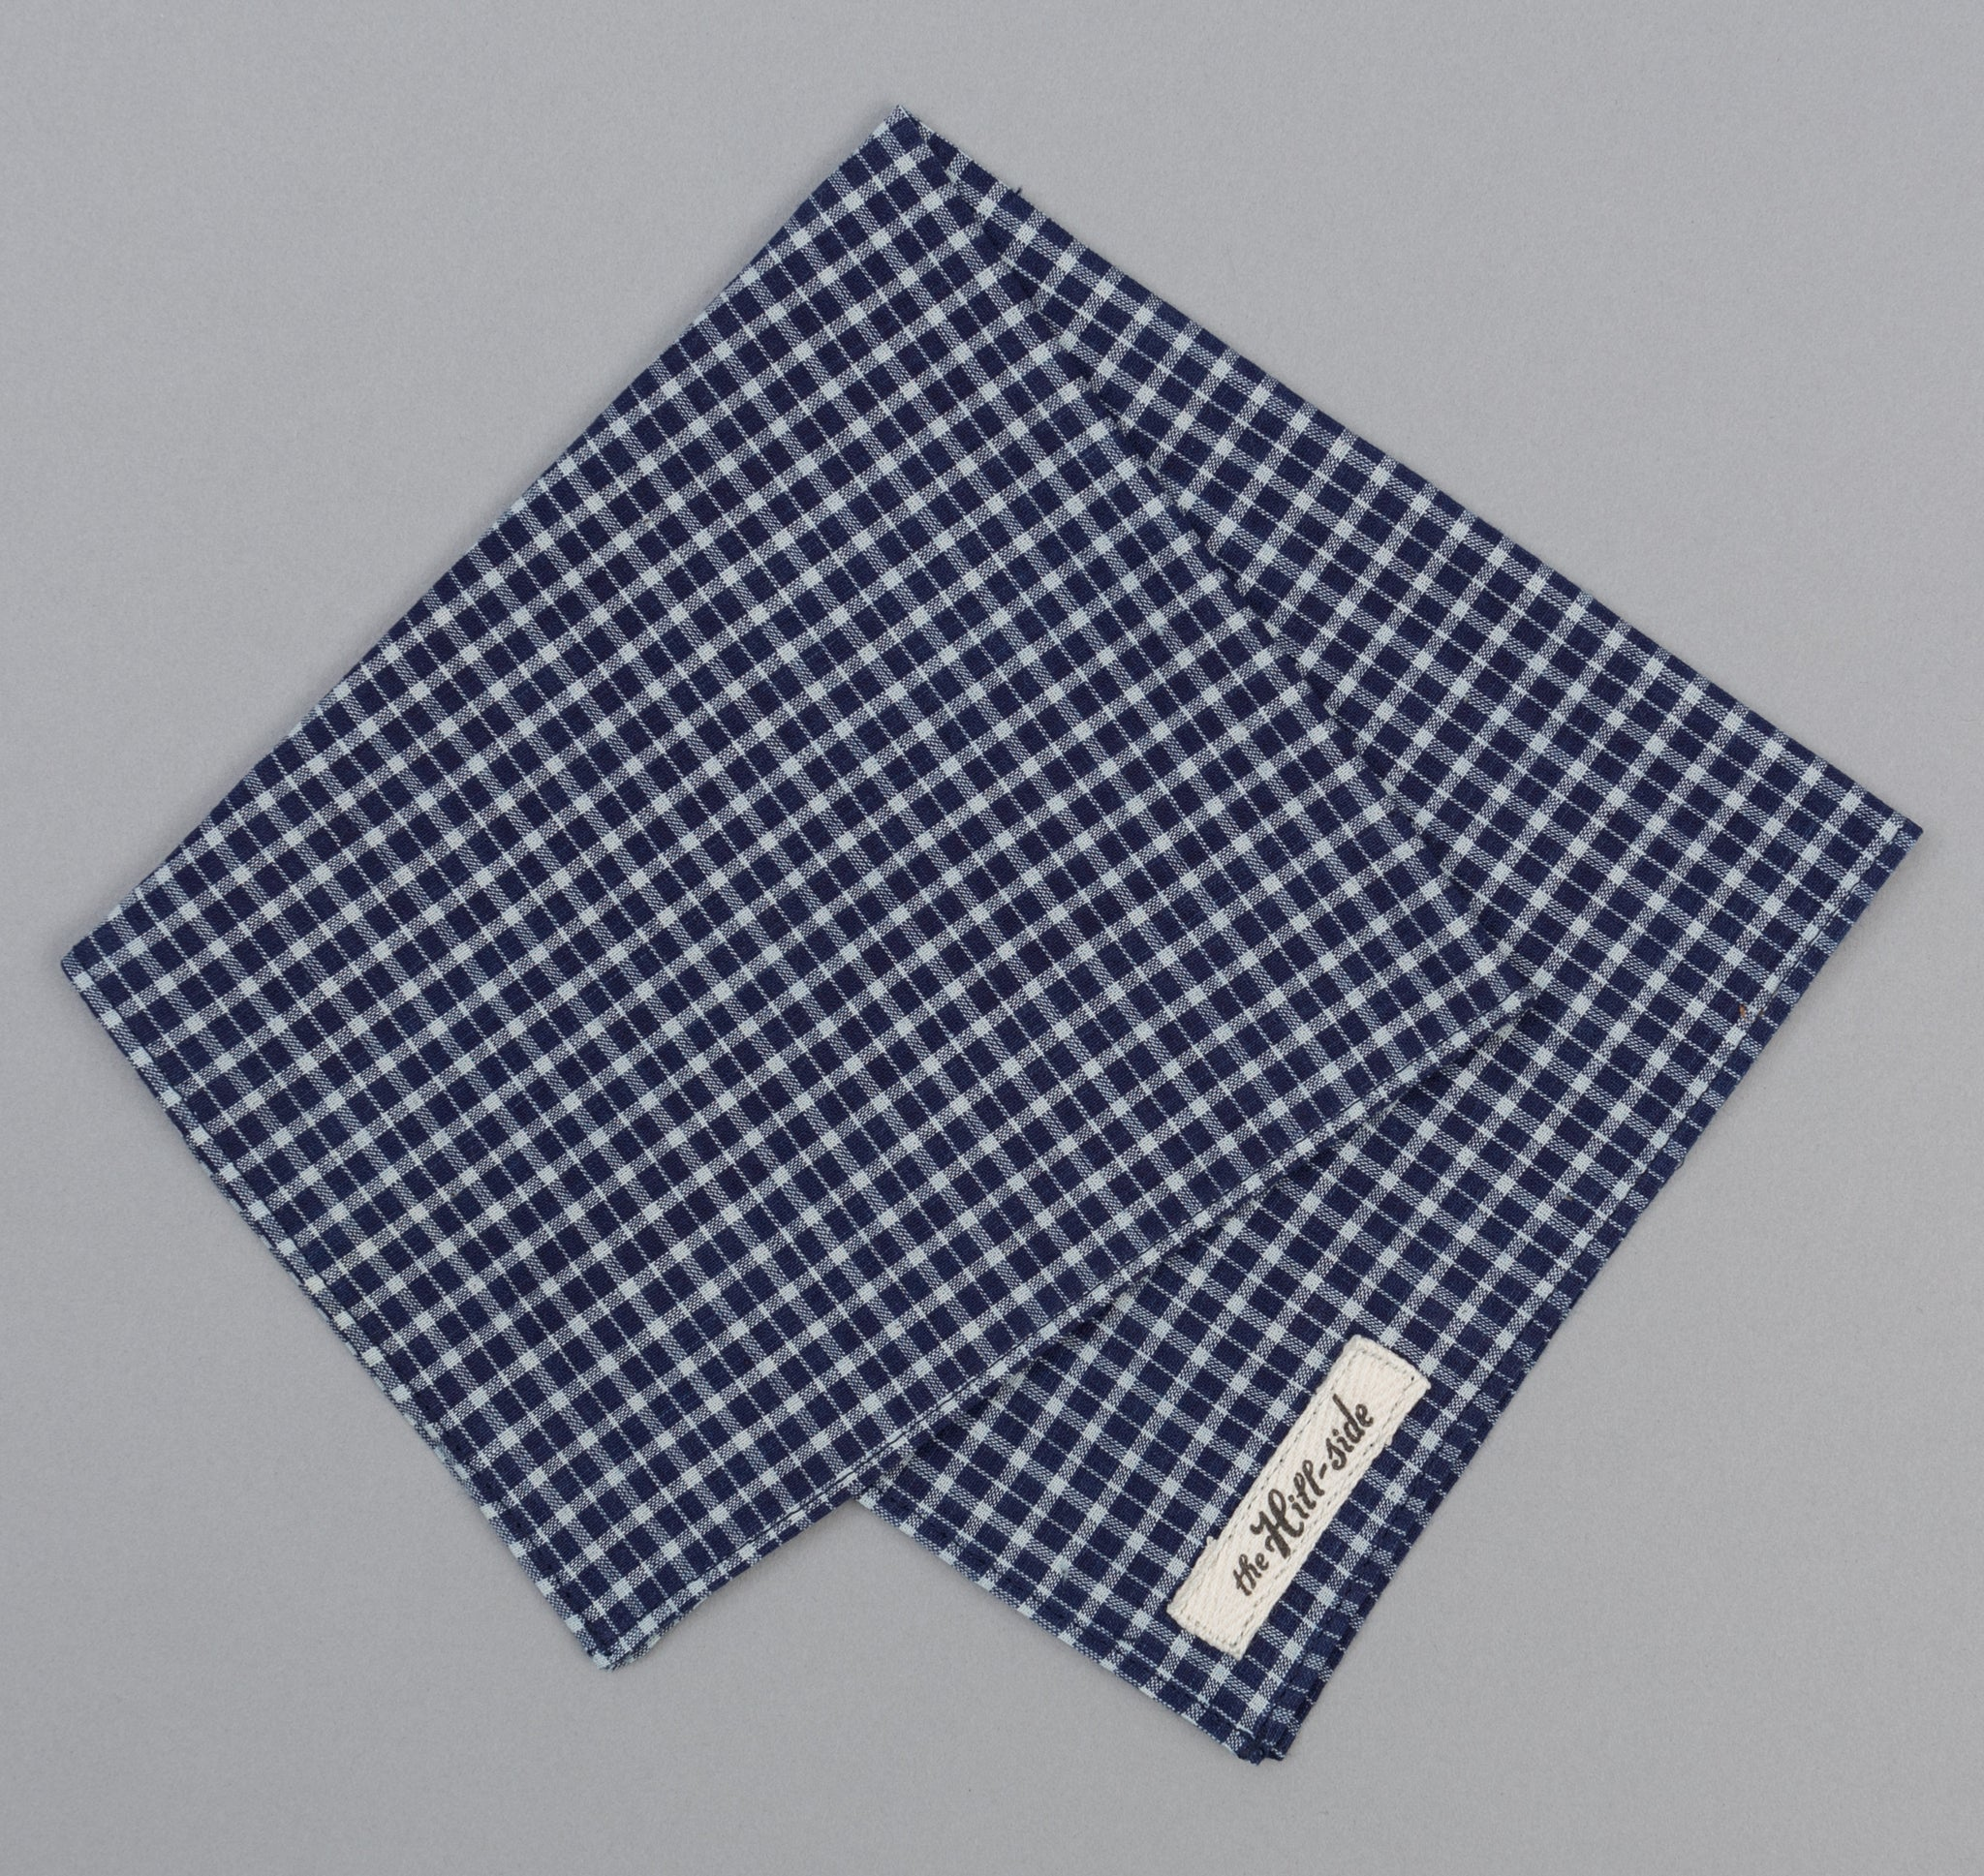 The Hill-Side - Selvedge Indigo Madras Small Check Bandana, Indigo Base - BA1-337 - image 1